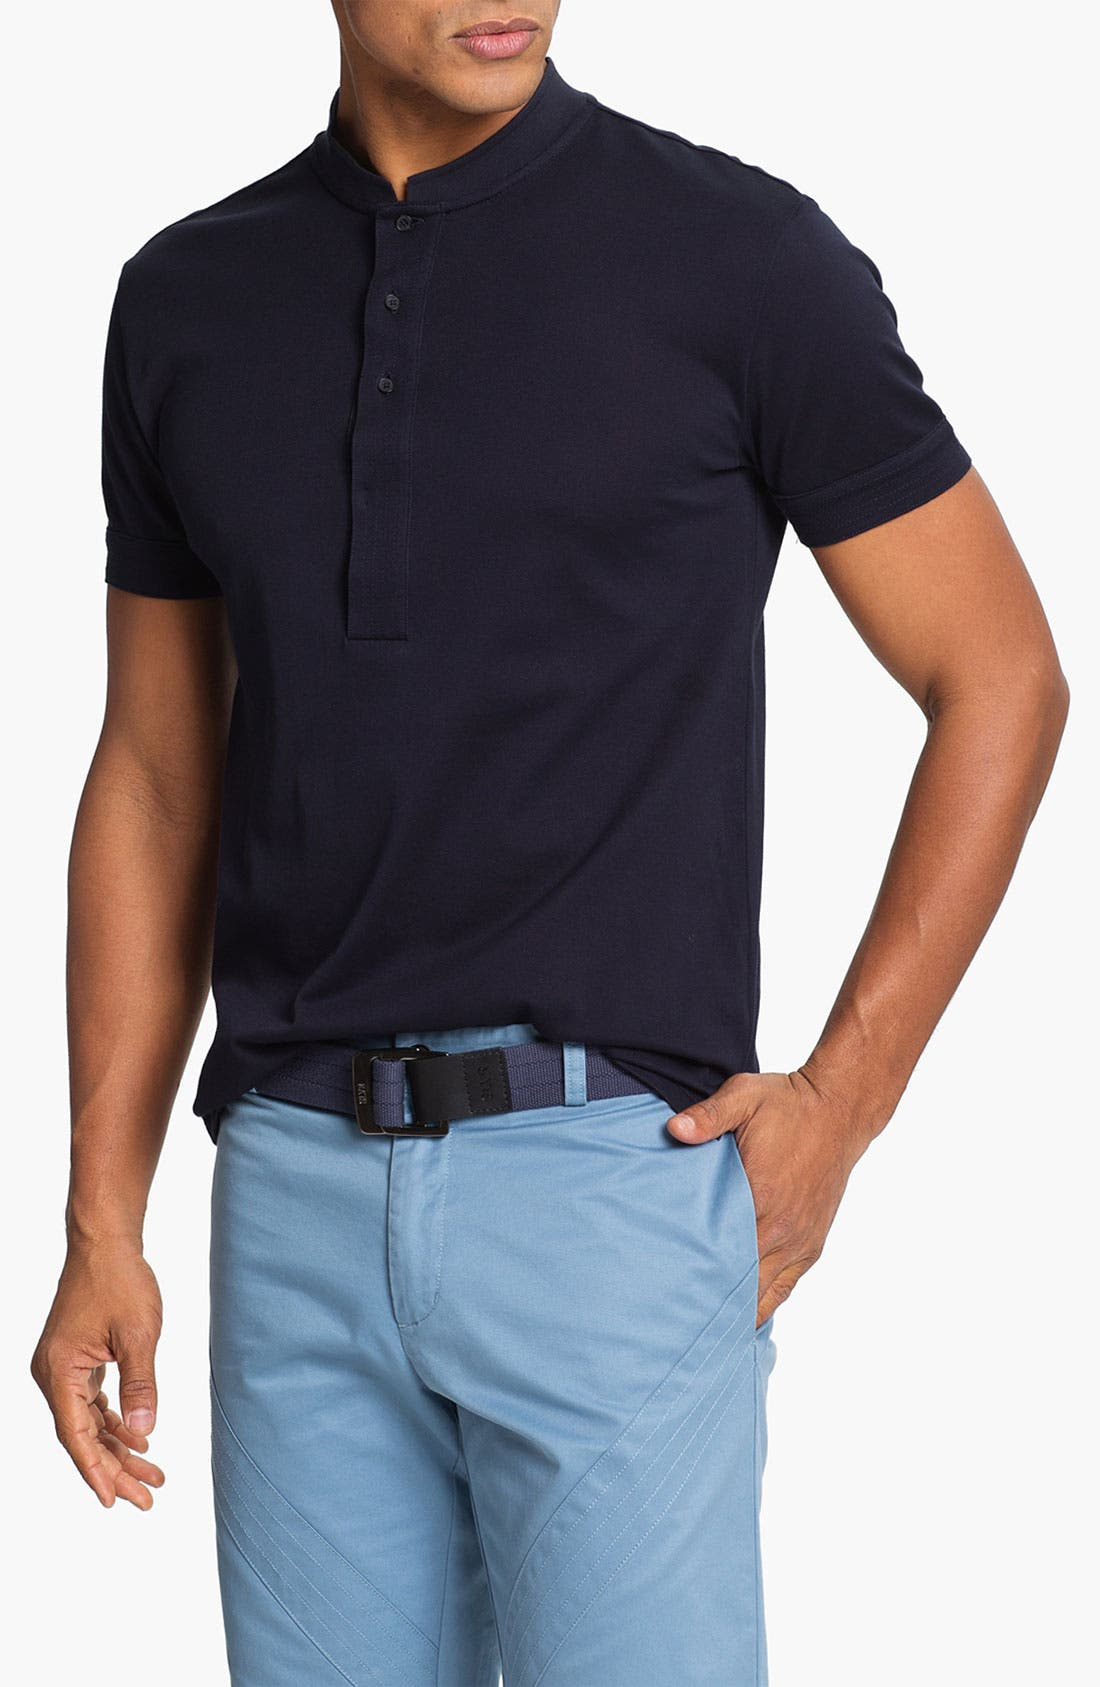 Main Image - adidas SLVR Trim Fit Polo